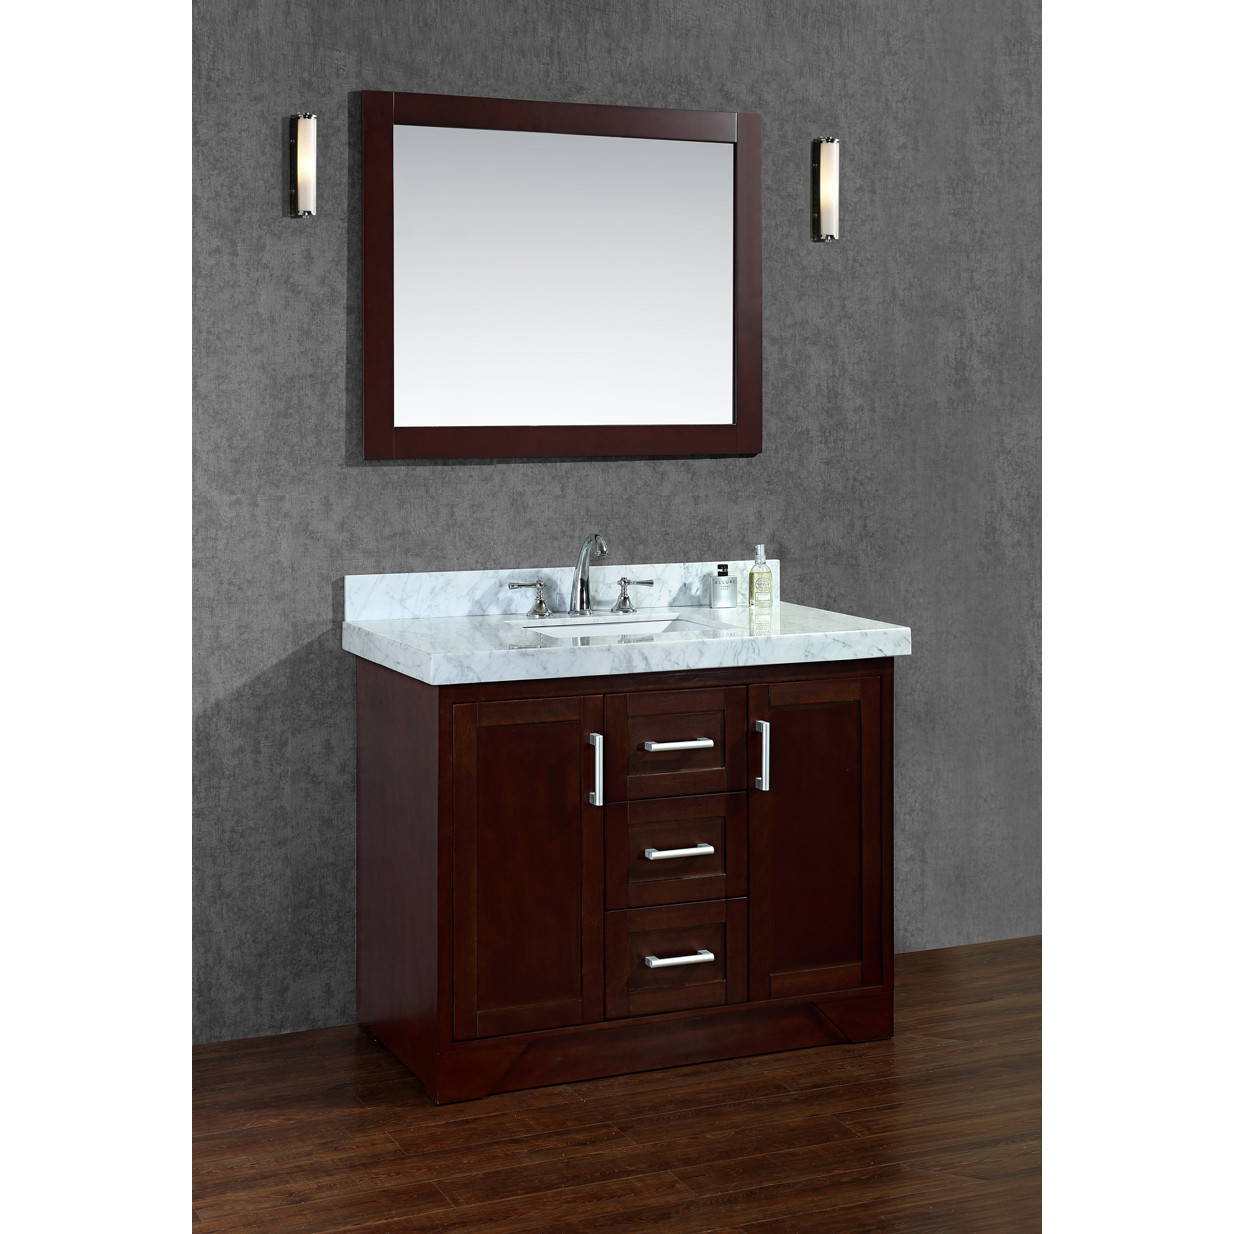 Compact Ariel Bath Ashbury 42 Single Bathroom Vanity Set with Mirror bathroom vanity sets